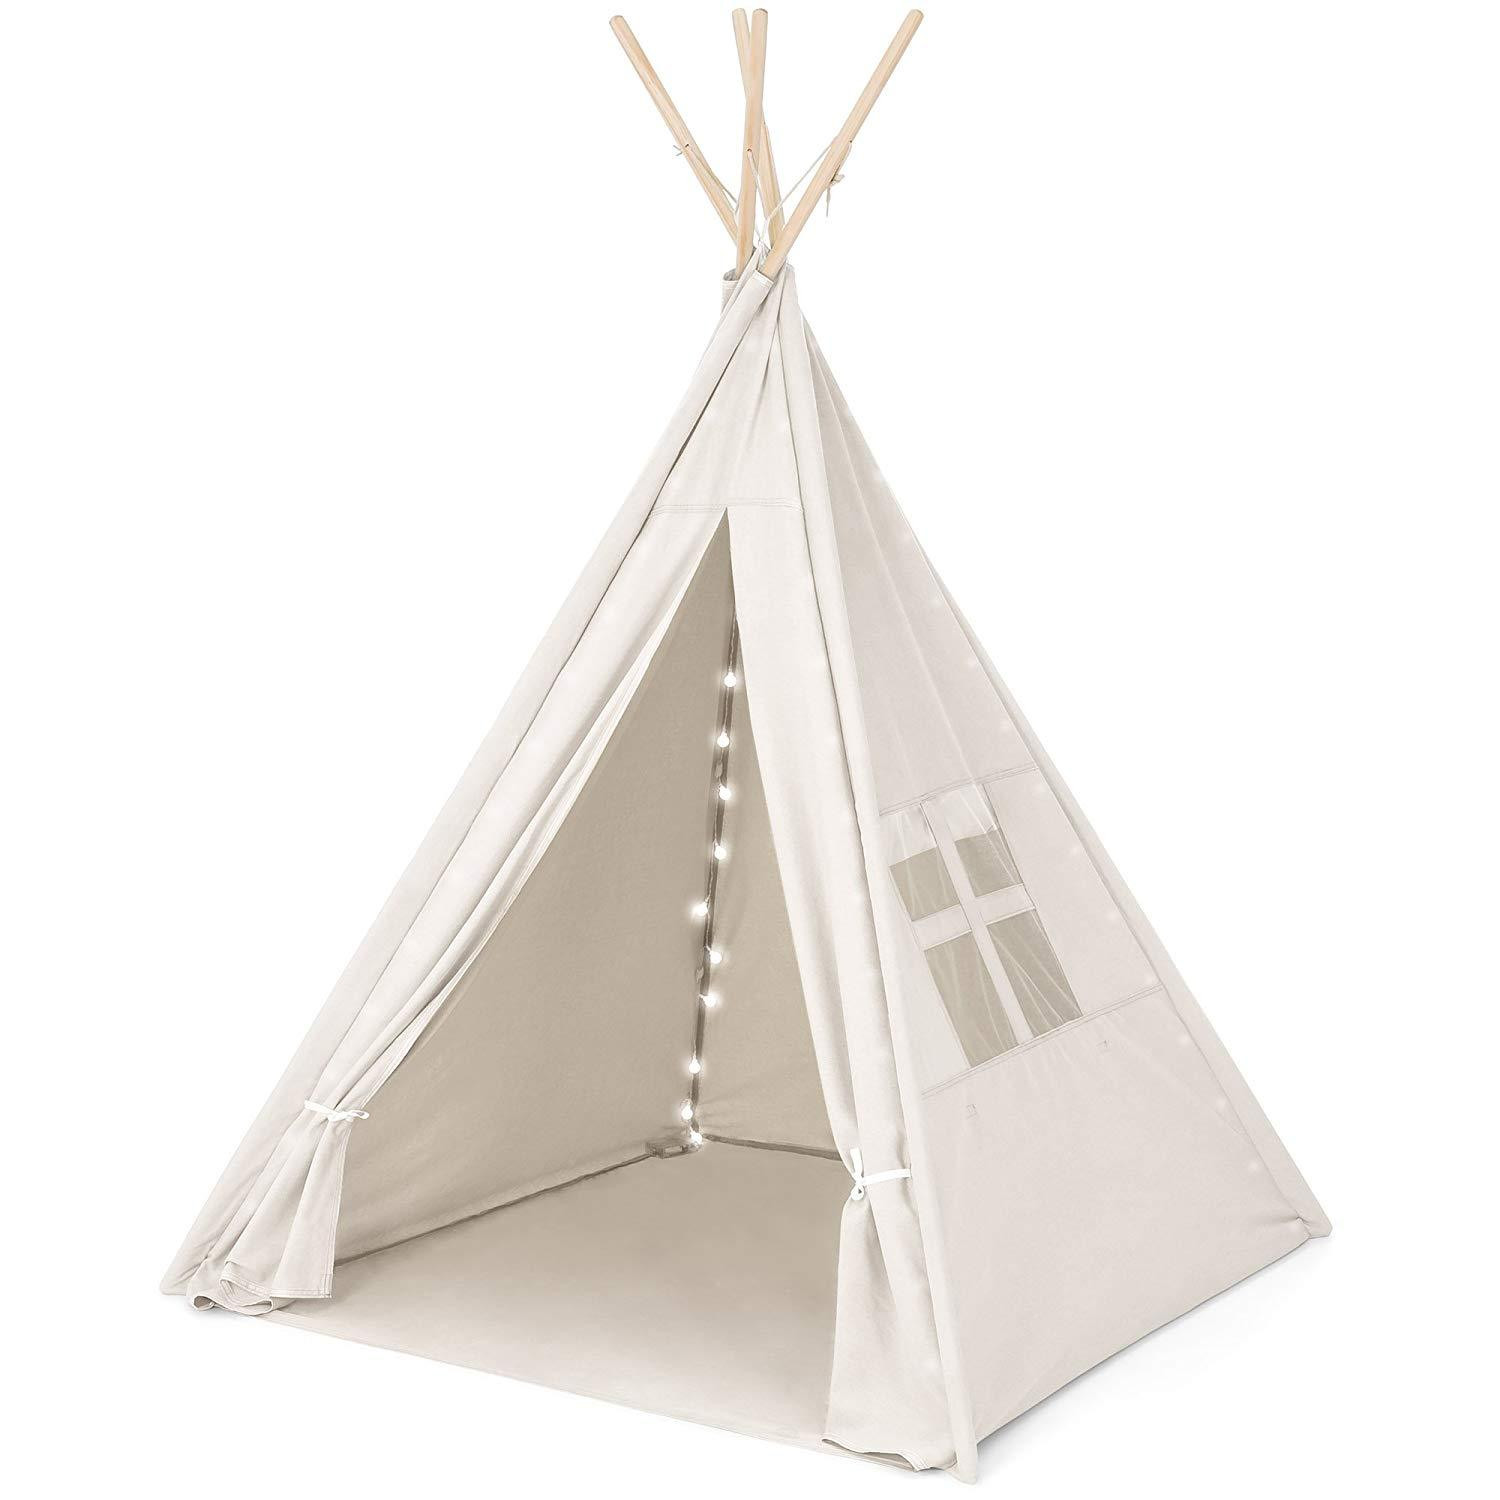 Kids Indoor Teepee  Kids Indoor Teepee Canvas Wooden 6 Foot Outdoor Playhouse